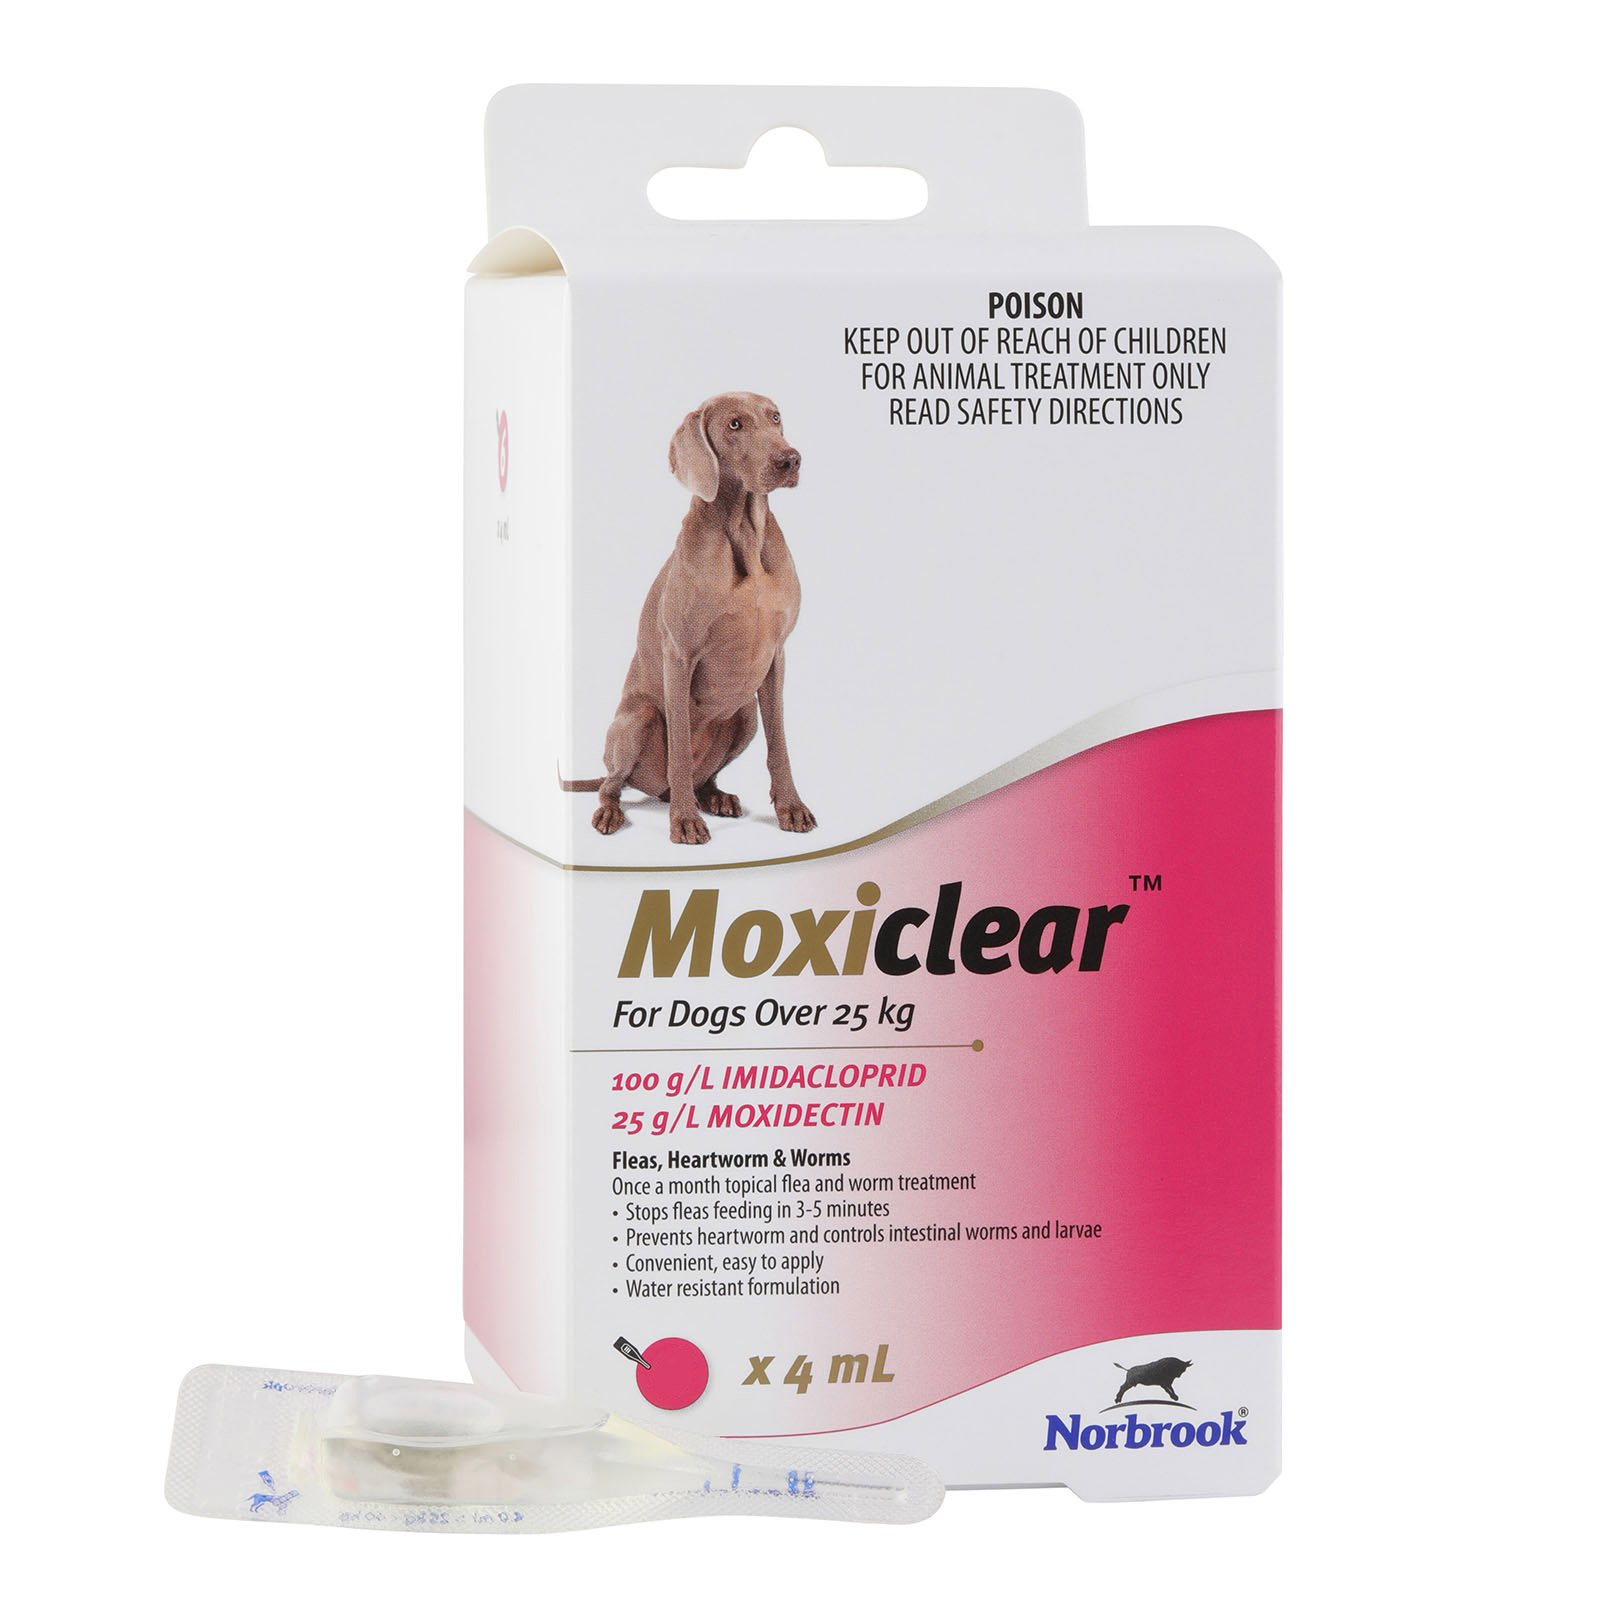 636996664271684854Moxiclear-for-Dogs-Over-25kg-red.jpg